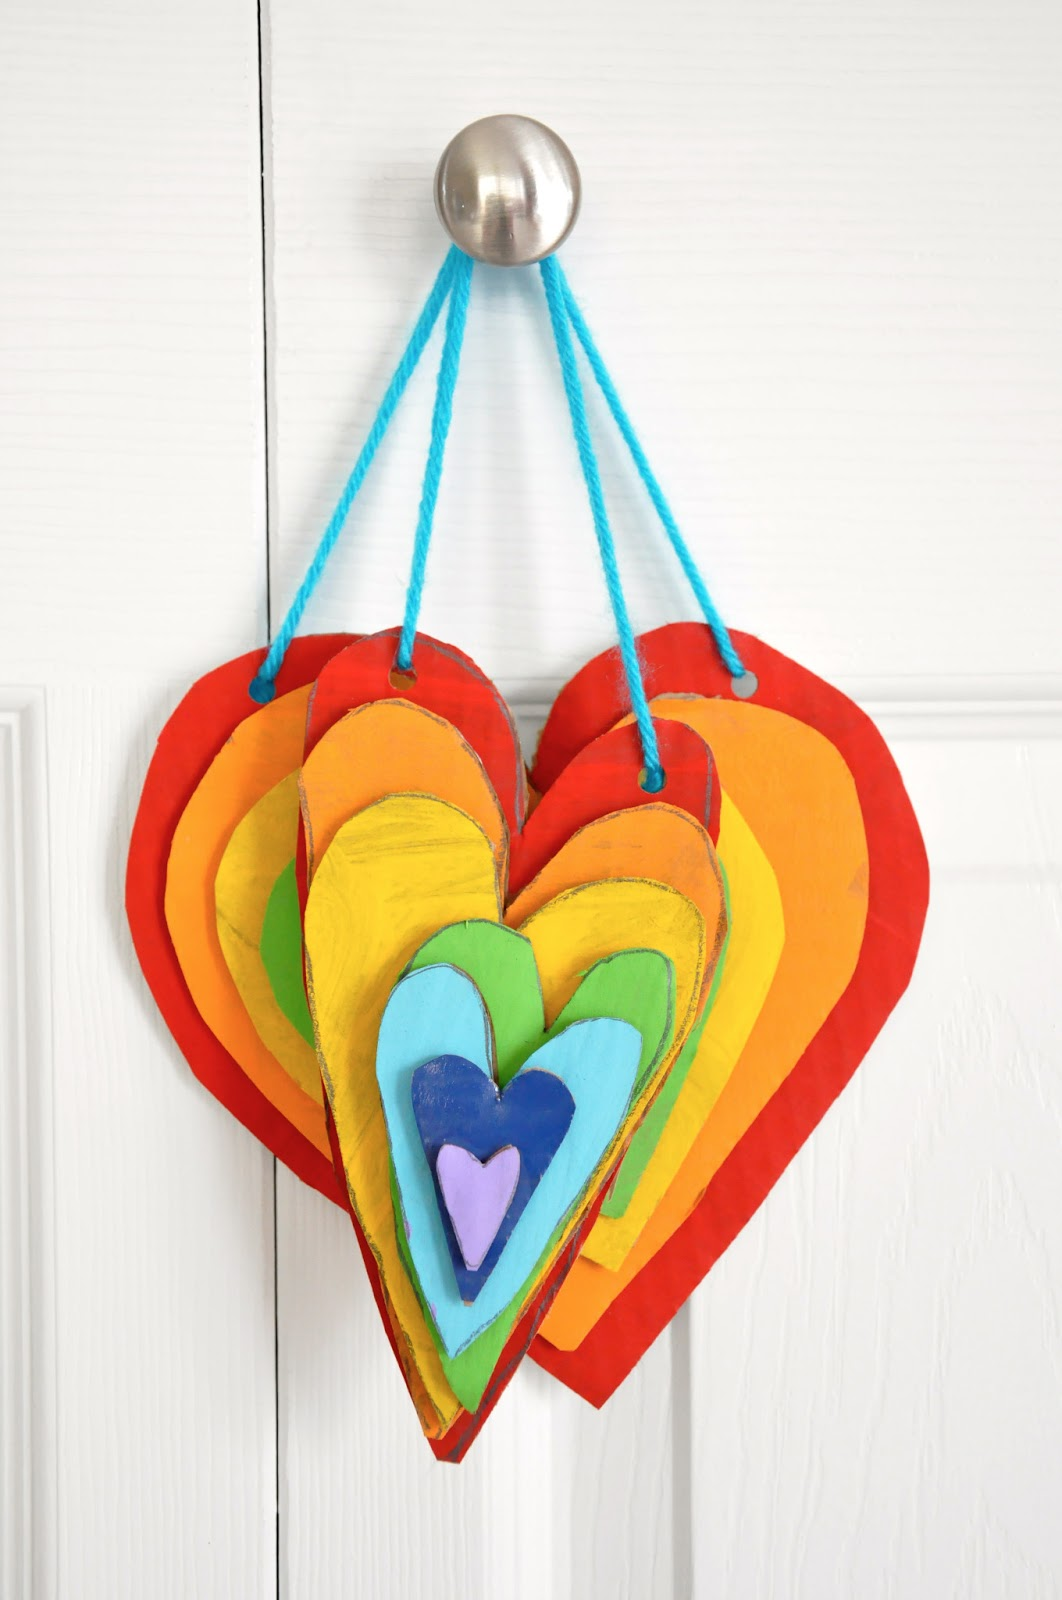 11 Heart Art Projects For Kids | Valentines art for kids ... |Heart Art Projects